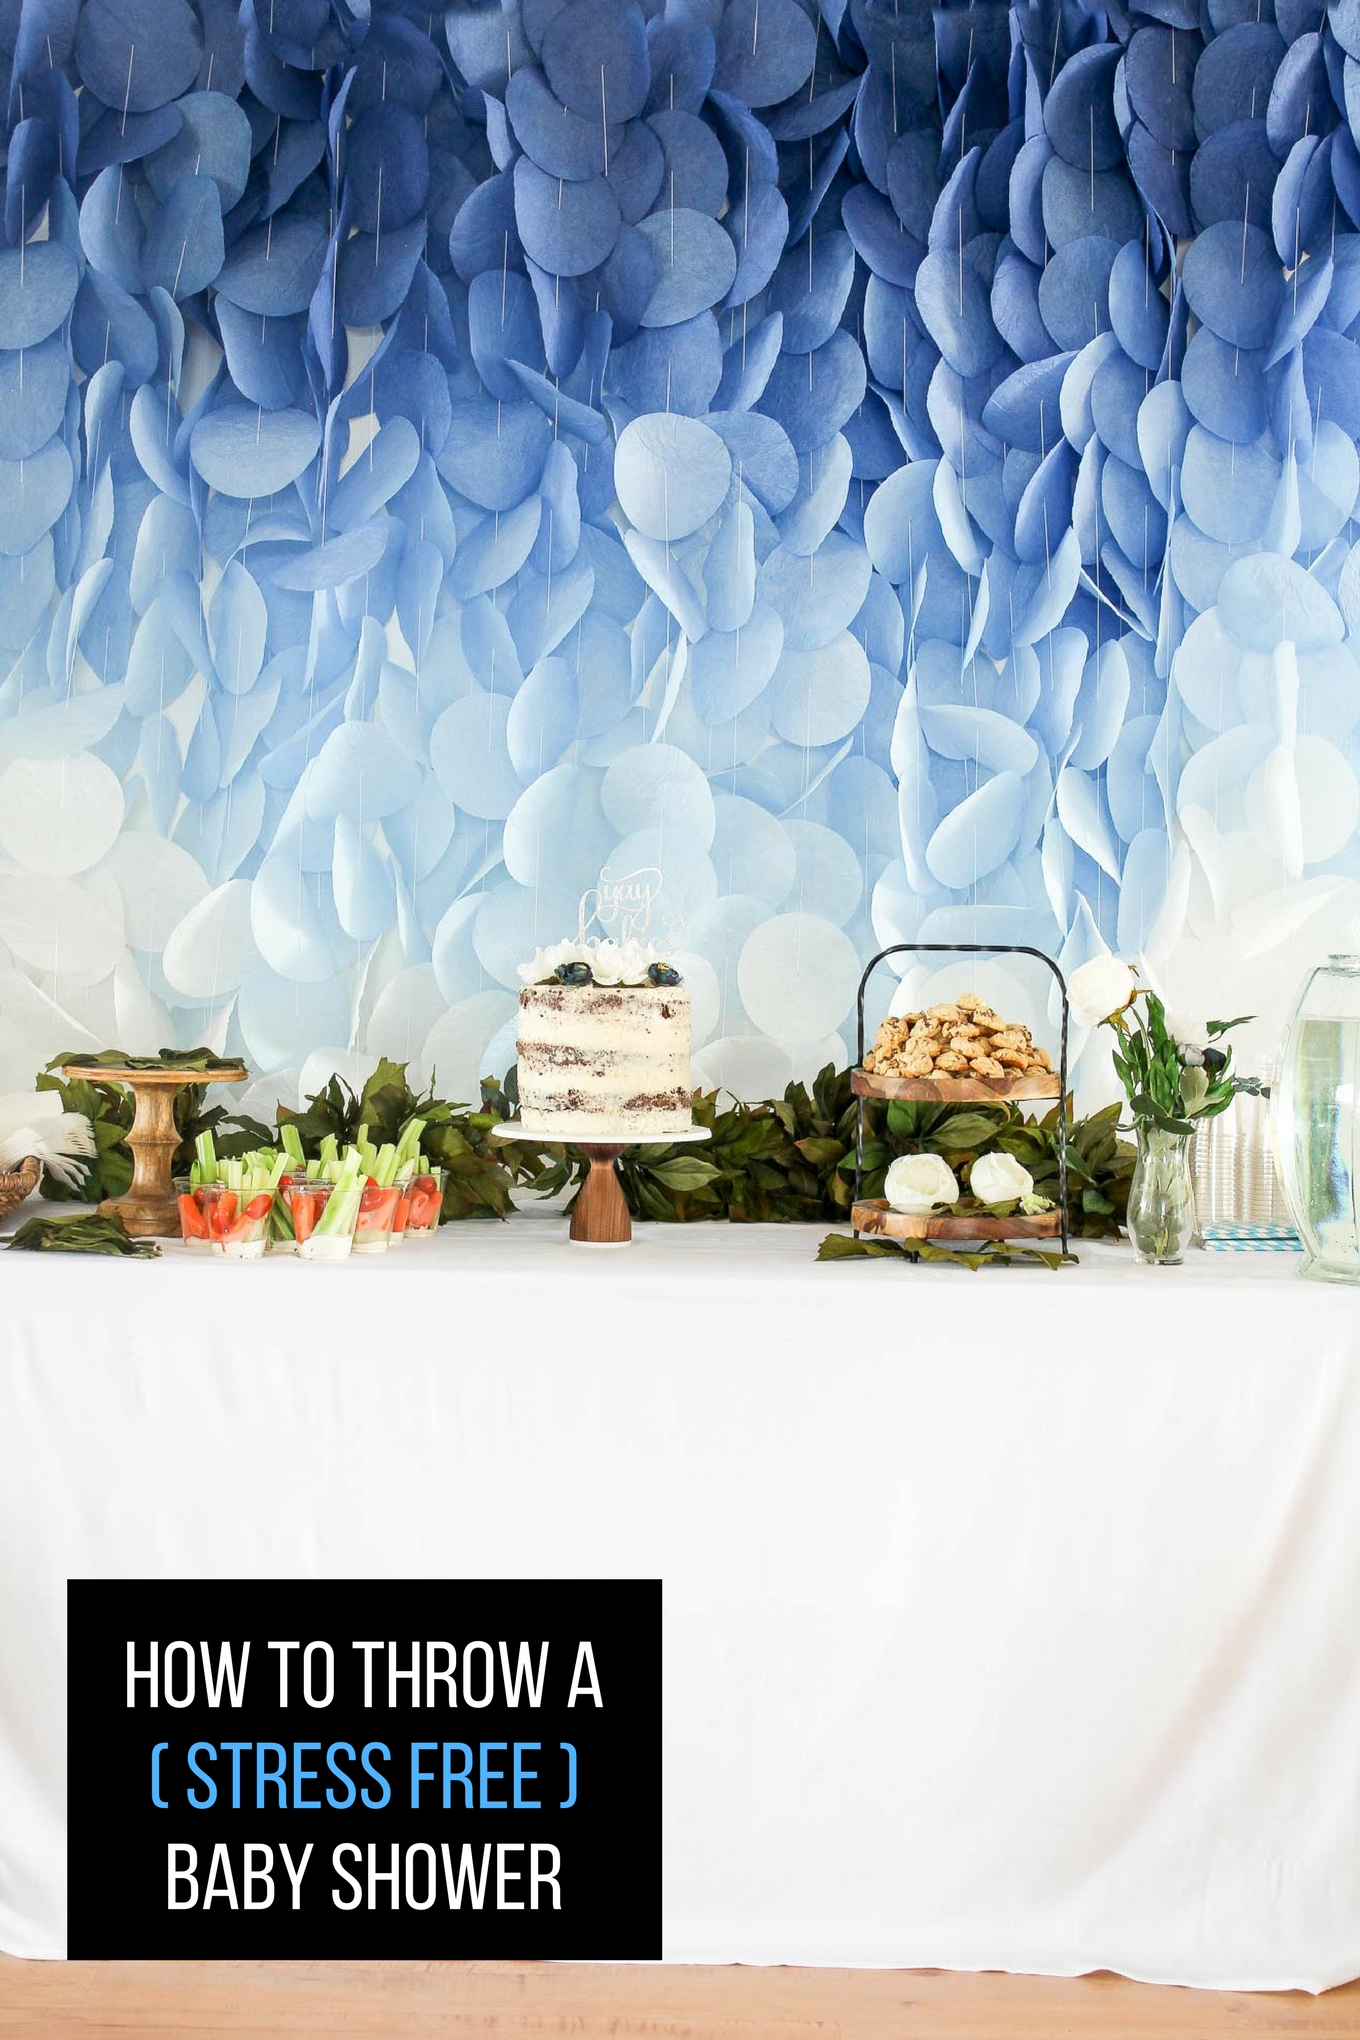 How to Throw a Stress Free Baby Shower – HAWTHORNE AND MAIN